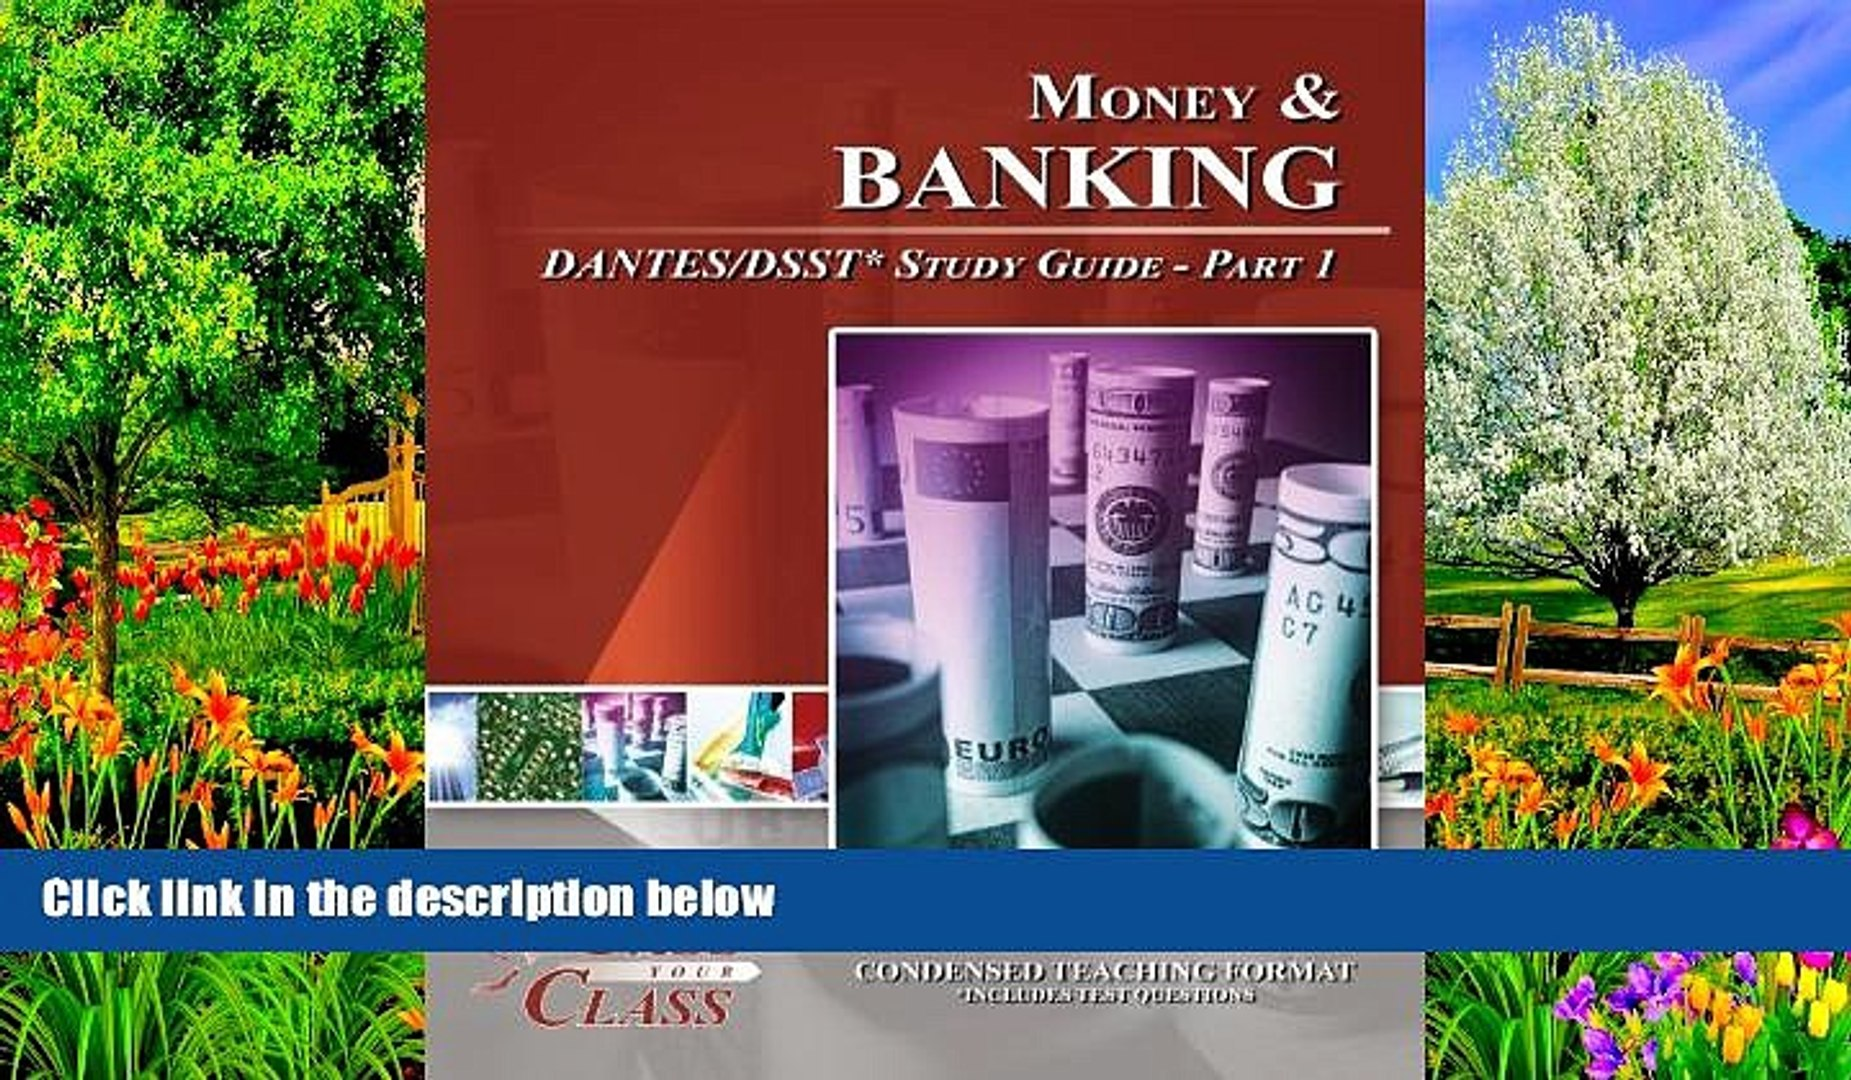 Online Pass Your Class Money and Banking DANTES / DSST Test Study Guide - Pass Your Class - Part 1